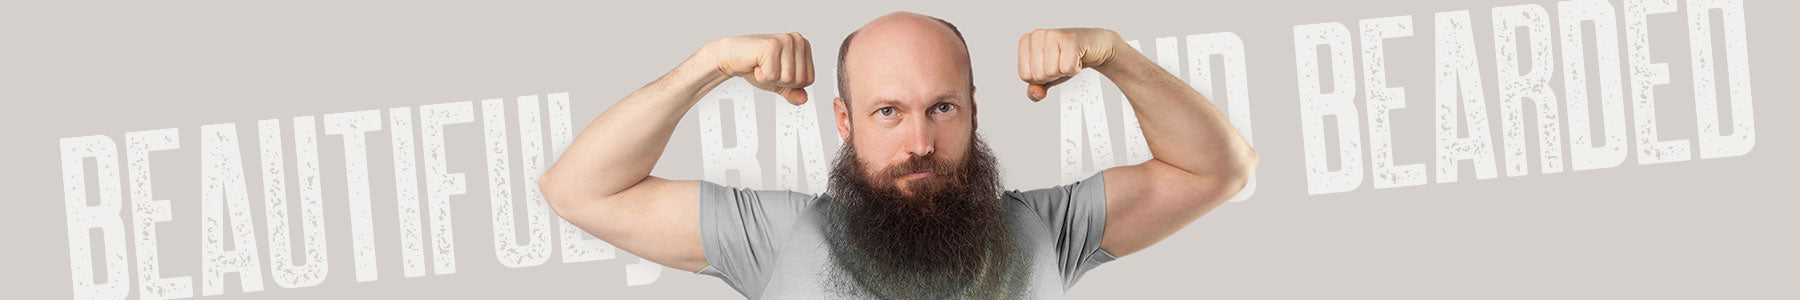 beautiful bald and bearded collection graphic tees